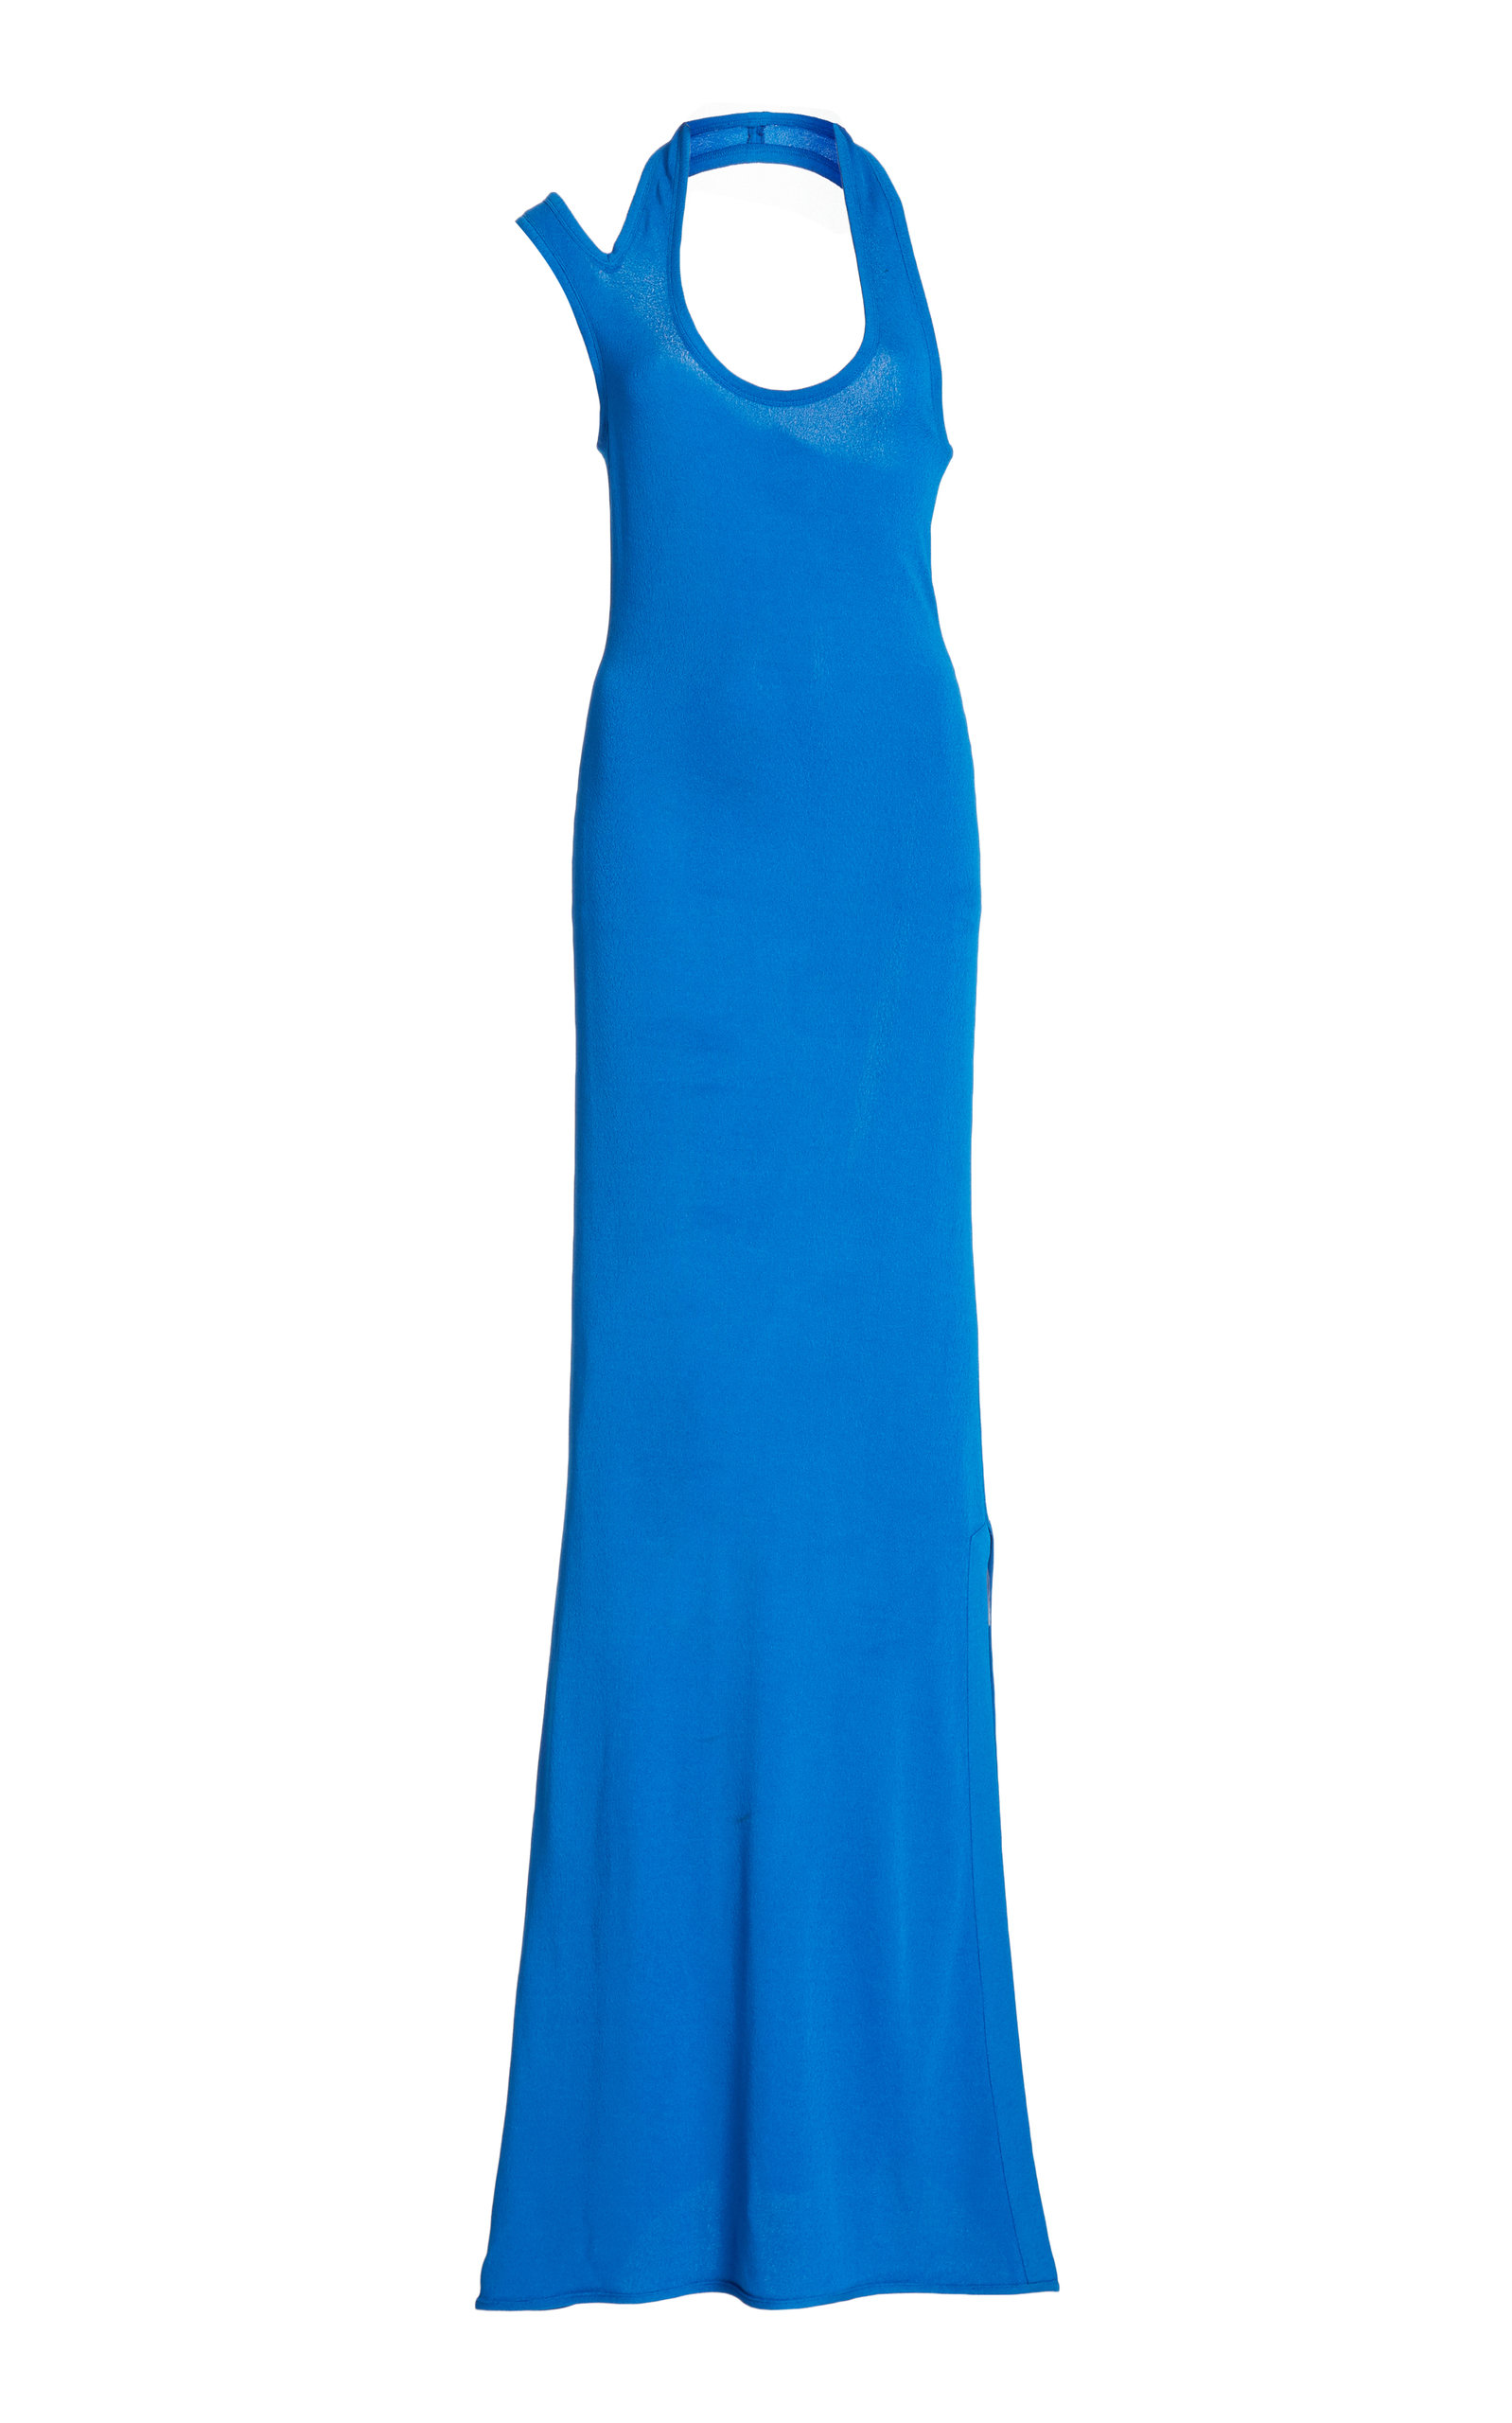 Proenza Schouler Asymmetric Halter Crepe Jersey Dress In Blue